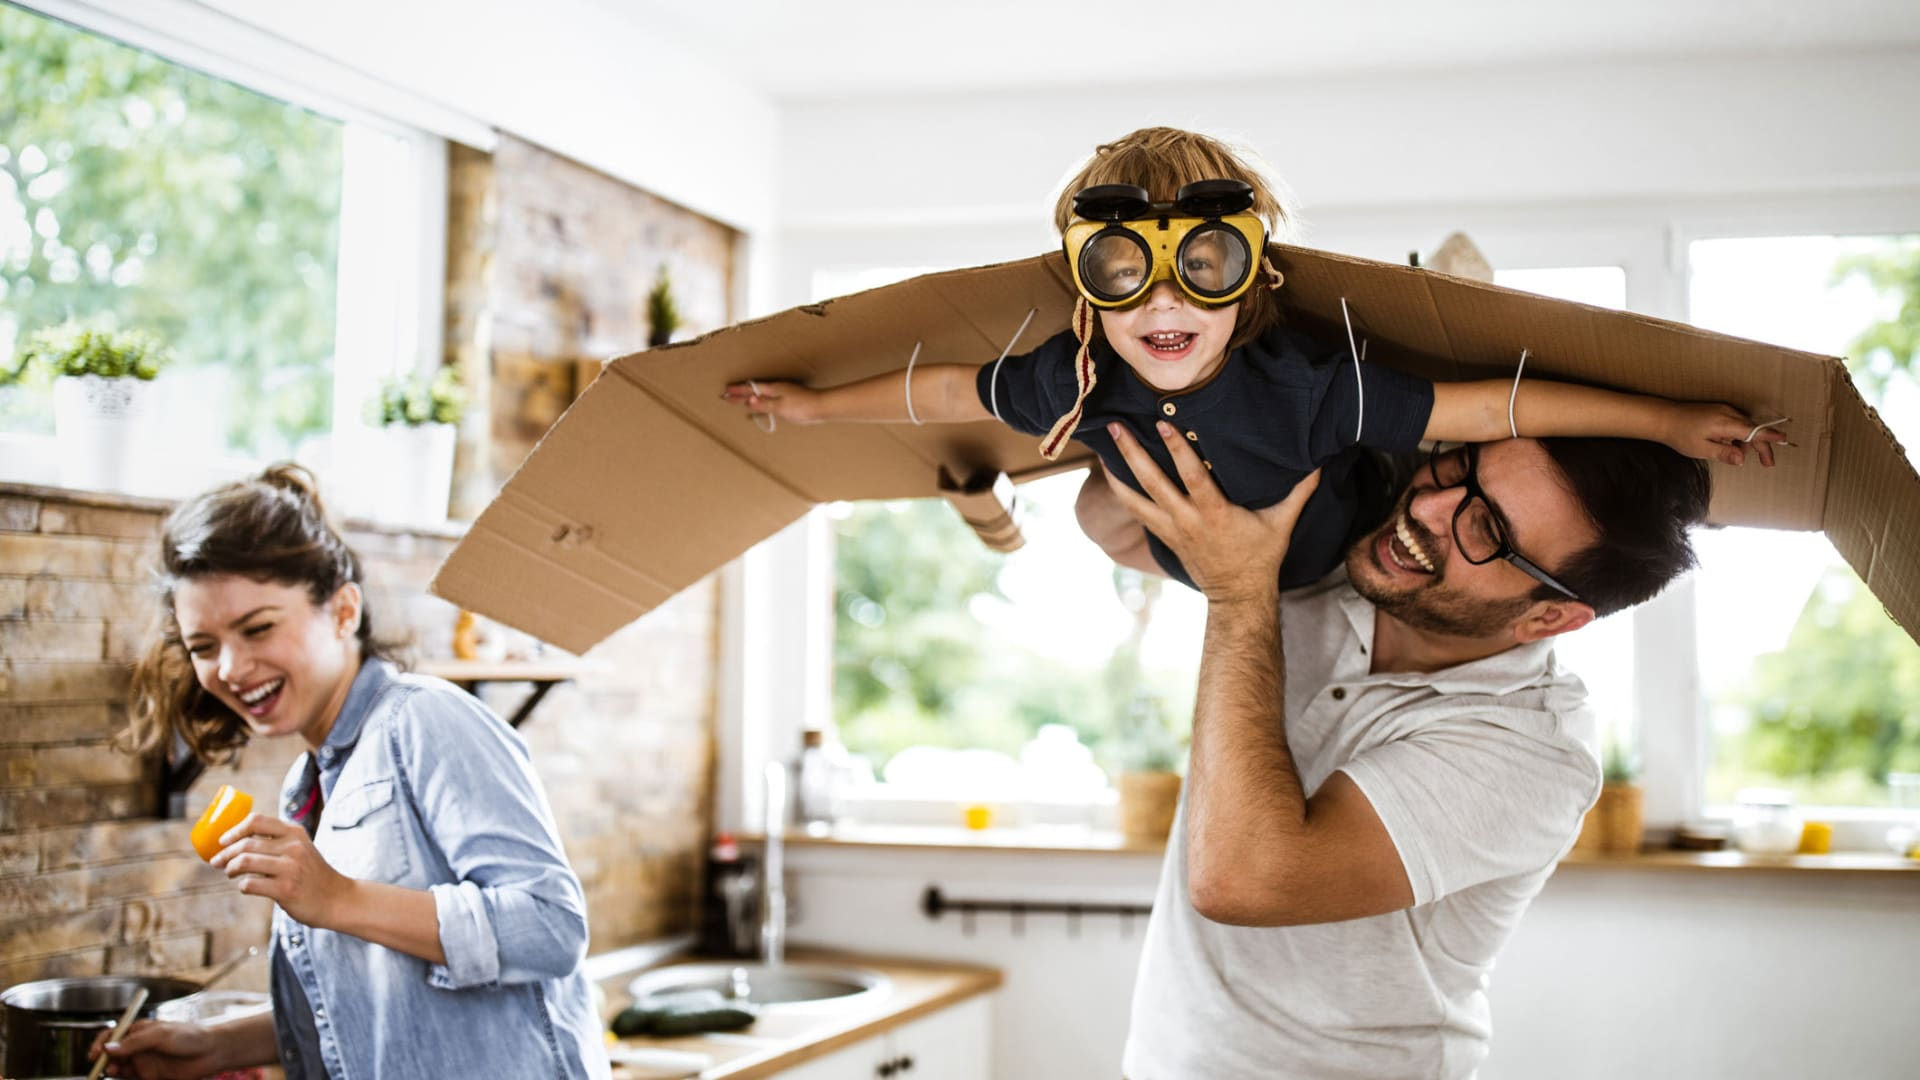 Science Says Children Whose Parents Play With Them a Very Specific Way Build More Self-Discipline